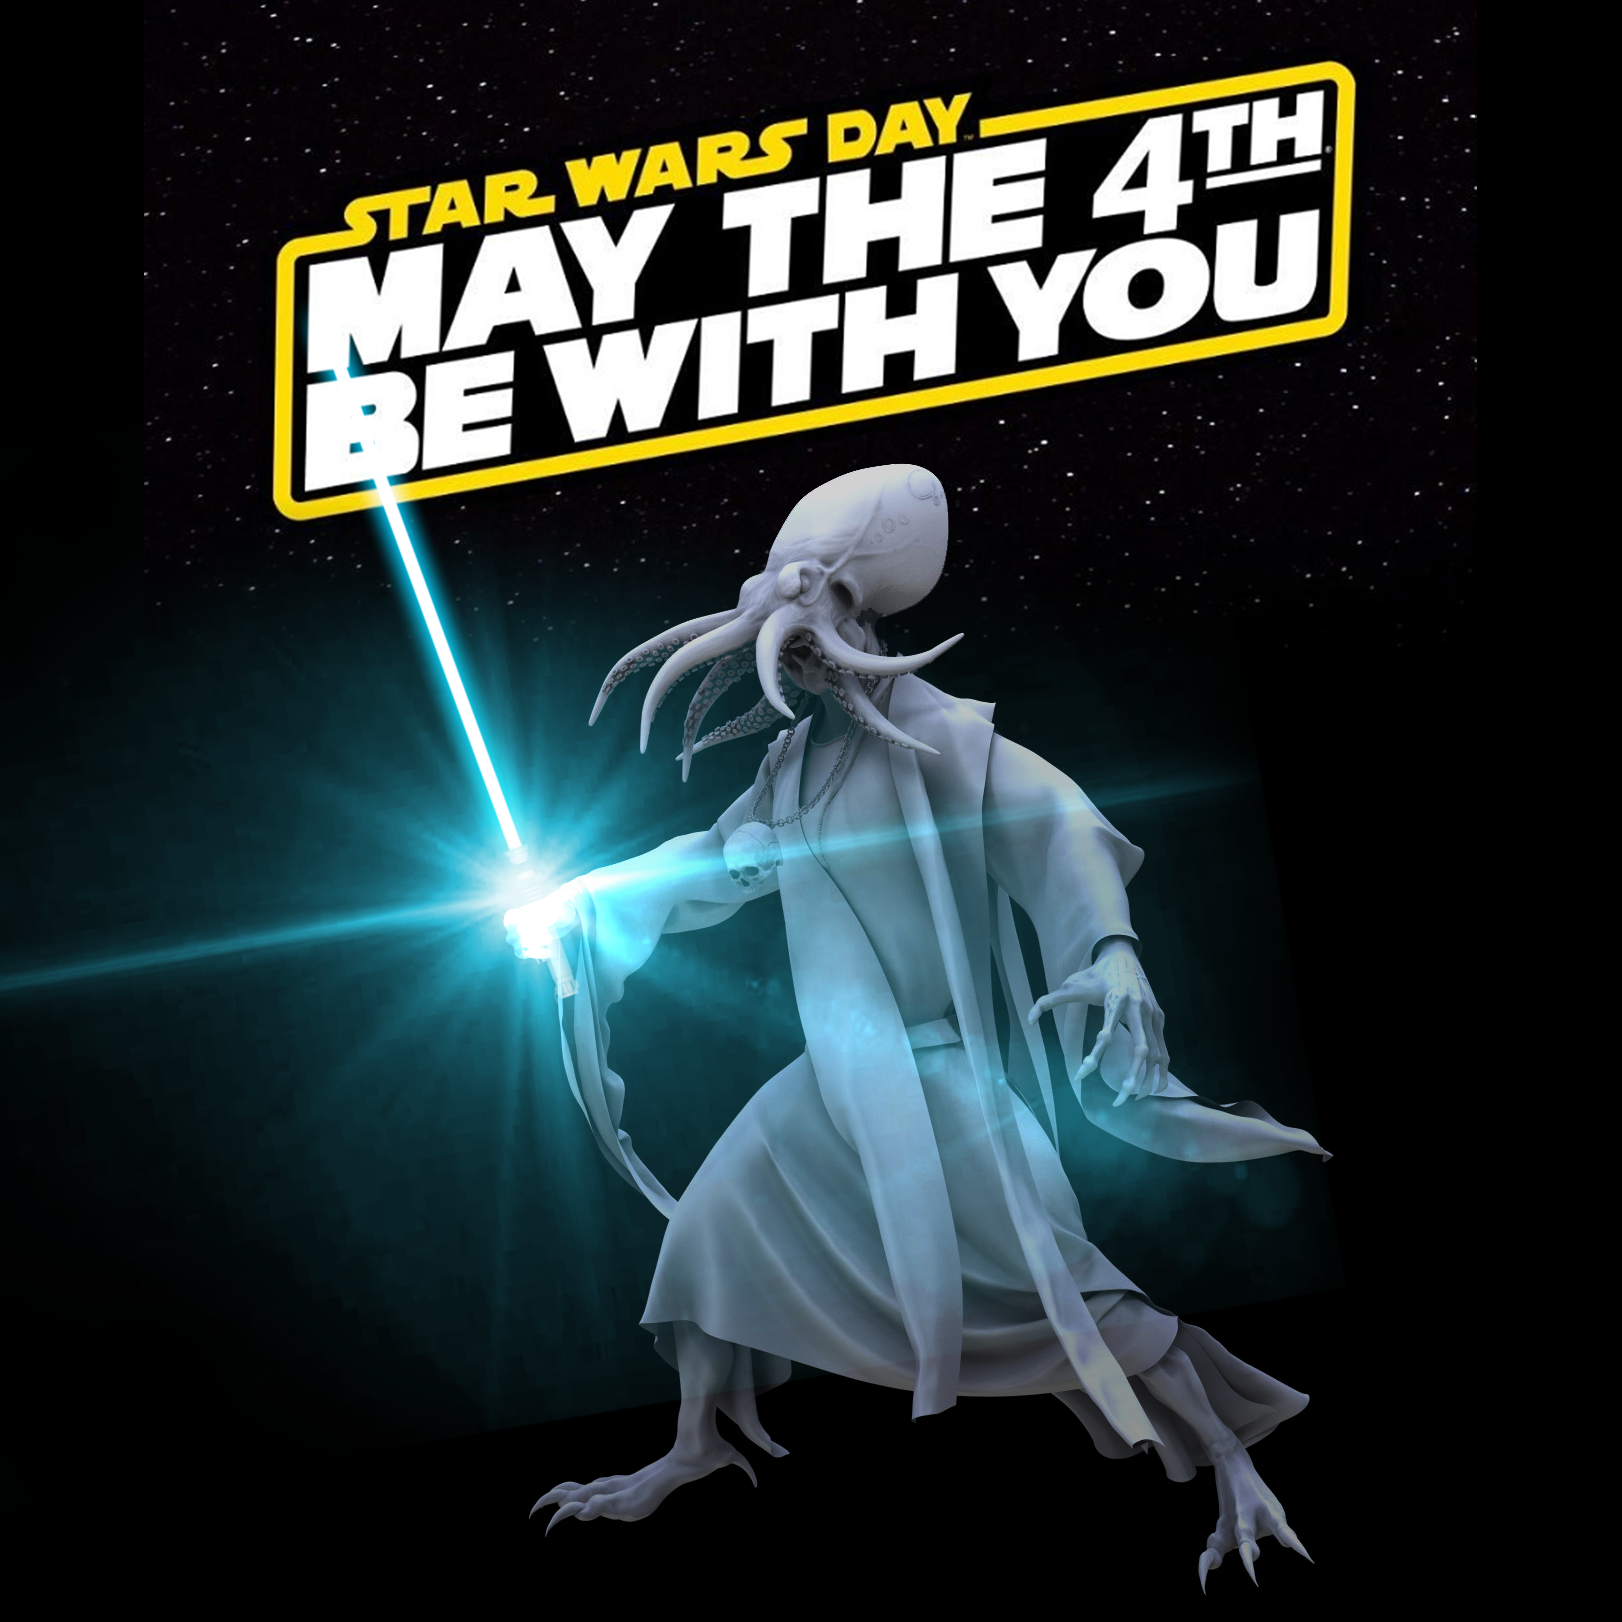 May The 4th Be With You Mindflayerjedi May The 4th Be With You May The 4th Mind Flayer